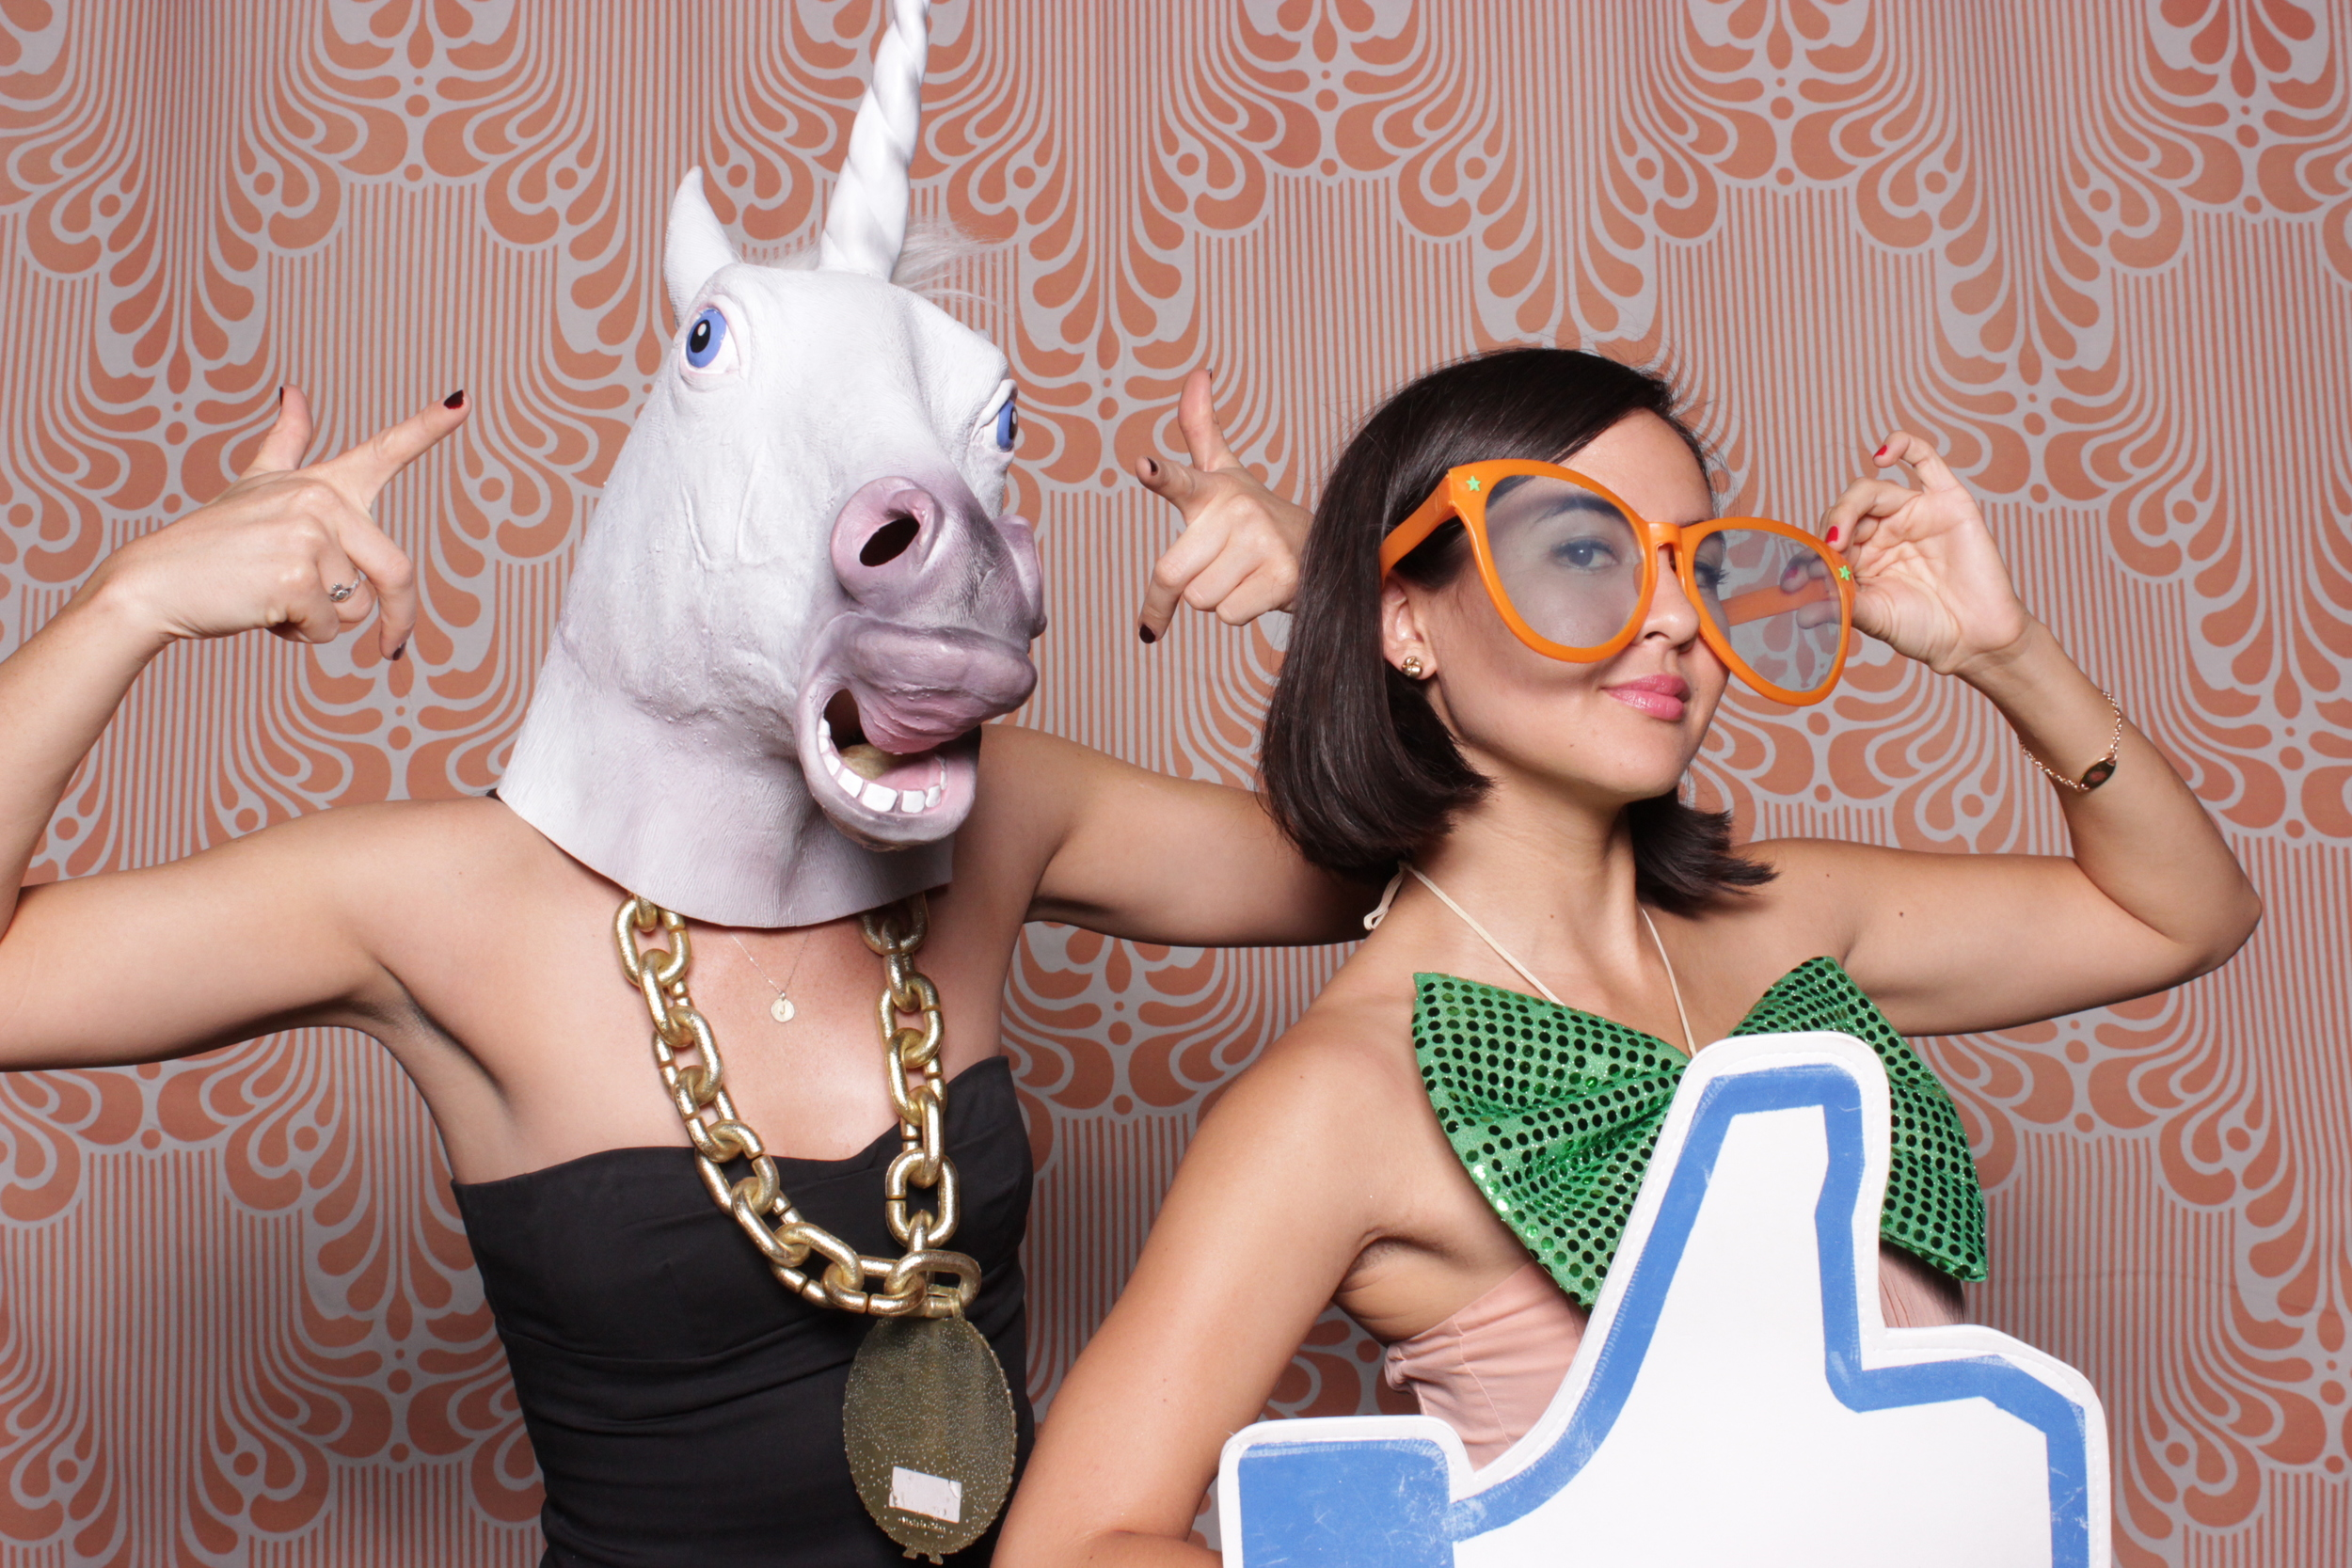 chico-photo-booth-rental-thumbs-up-unicorn-prop